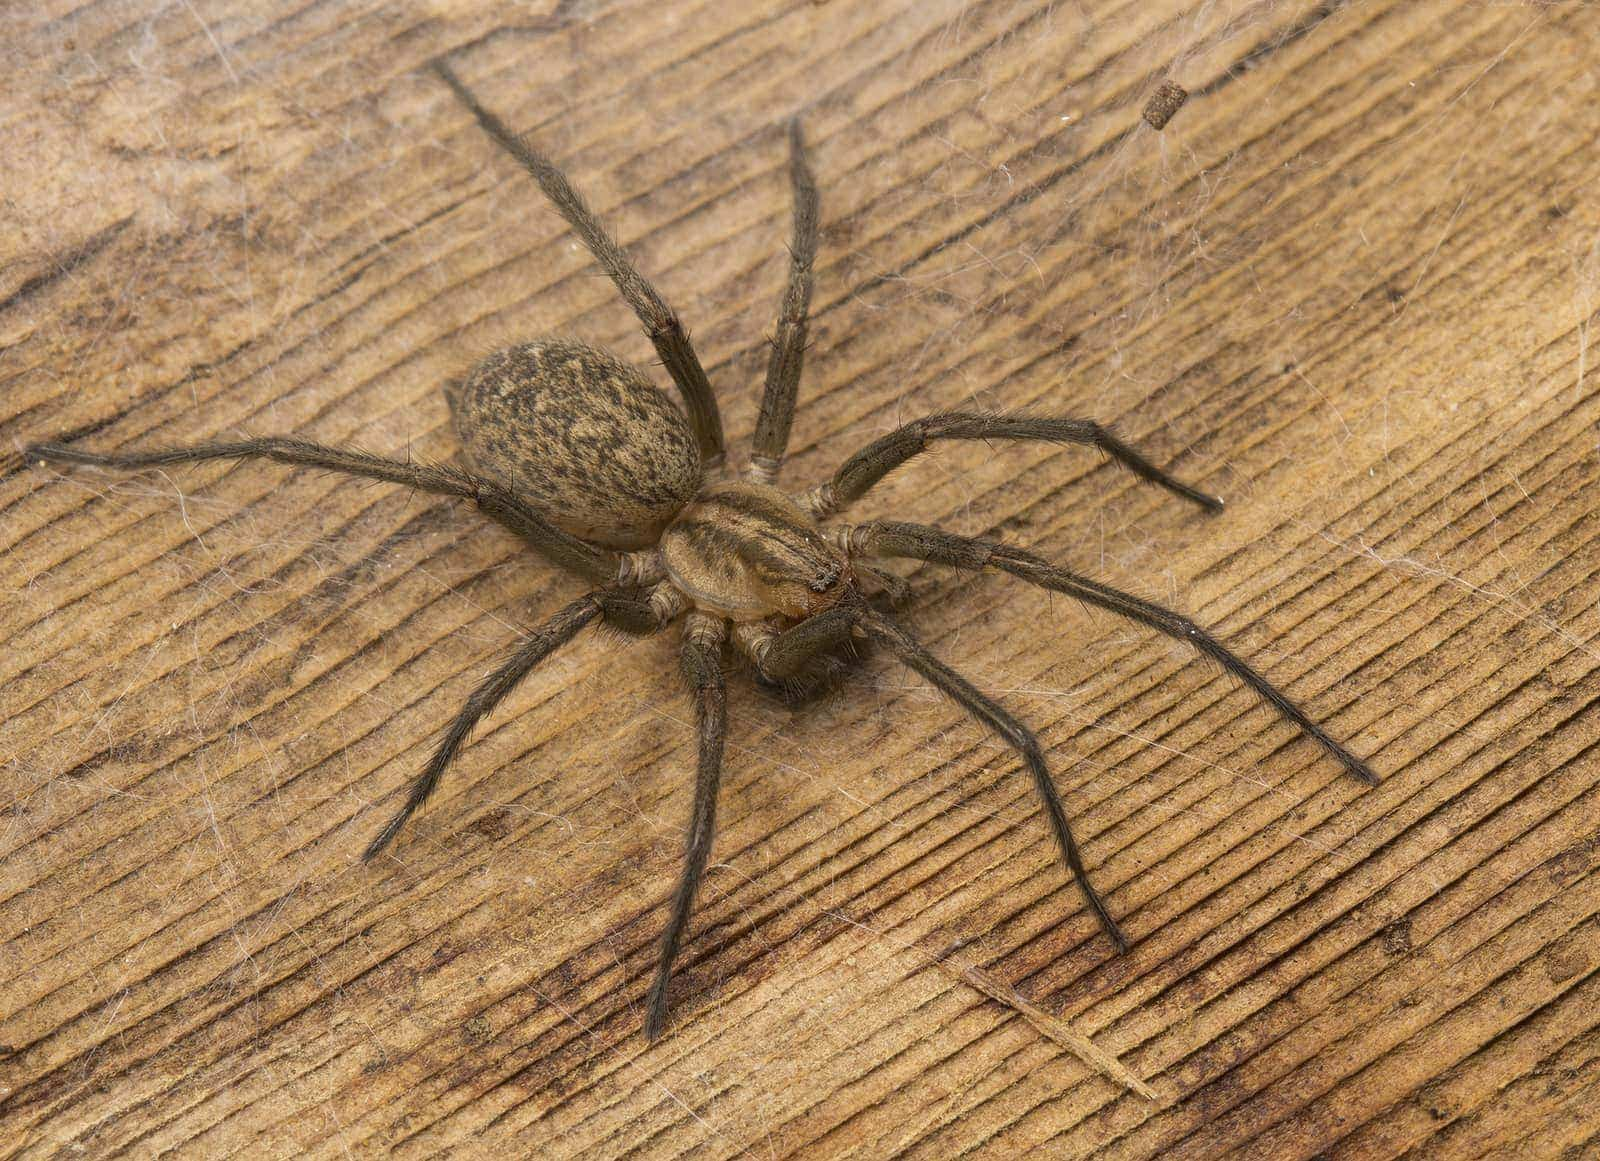 Picture of Eratigena agrestis (Hobo Spider) - Female - Dorsal